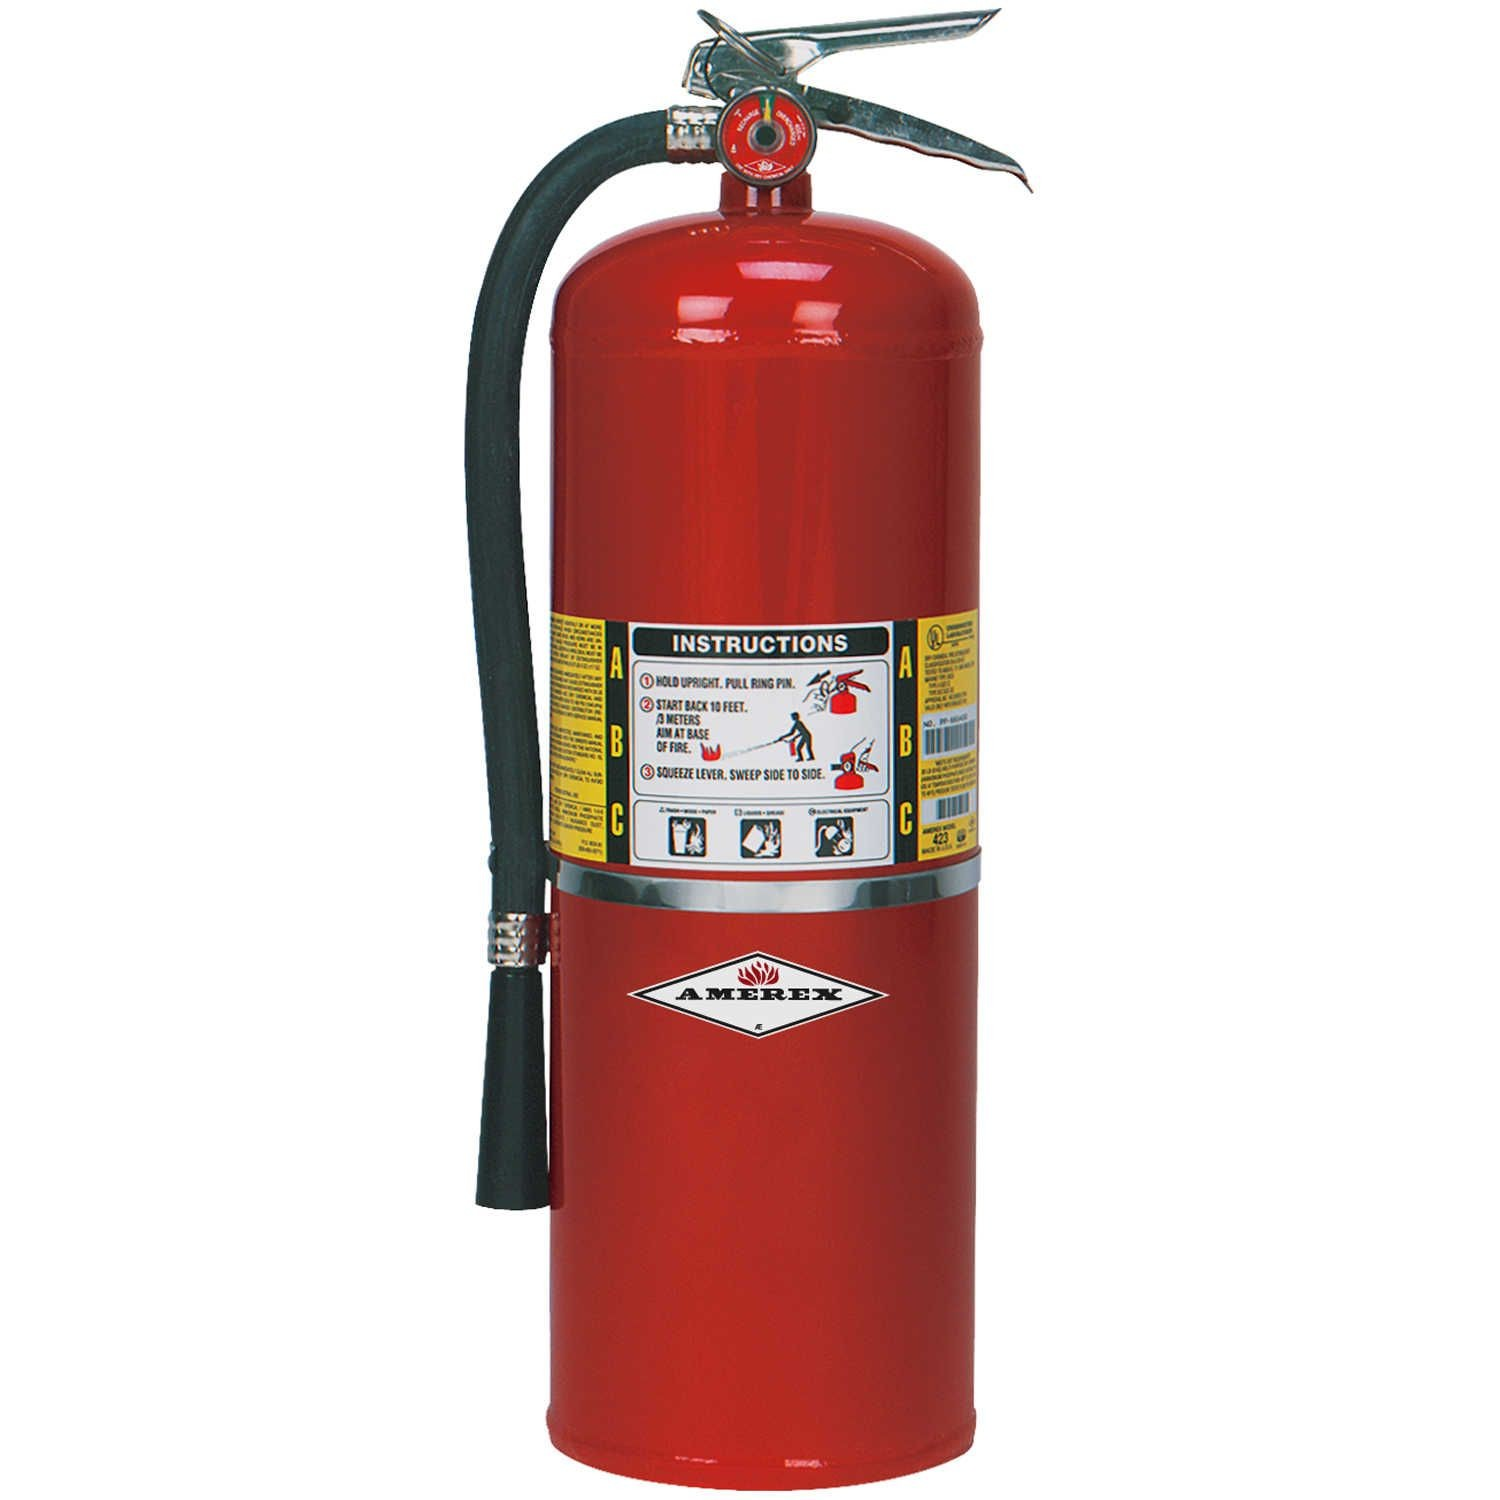 2-1/2 LB. ABC STORED PRESSURE DRY CHEMICAL FIRE EXTINGUISHER